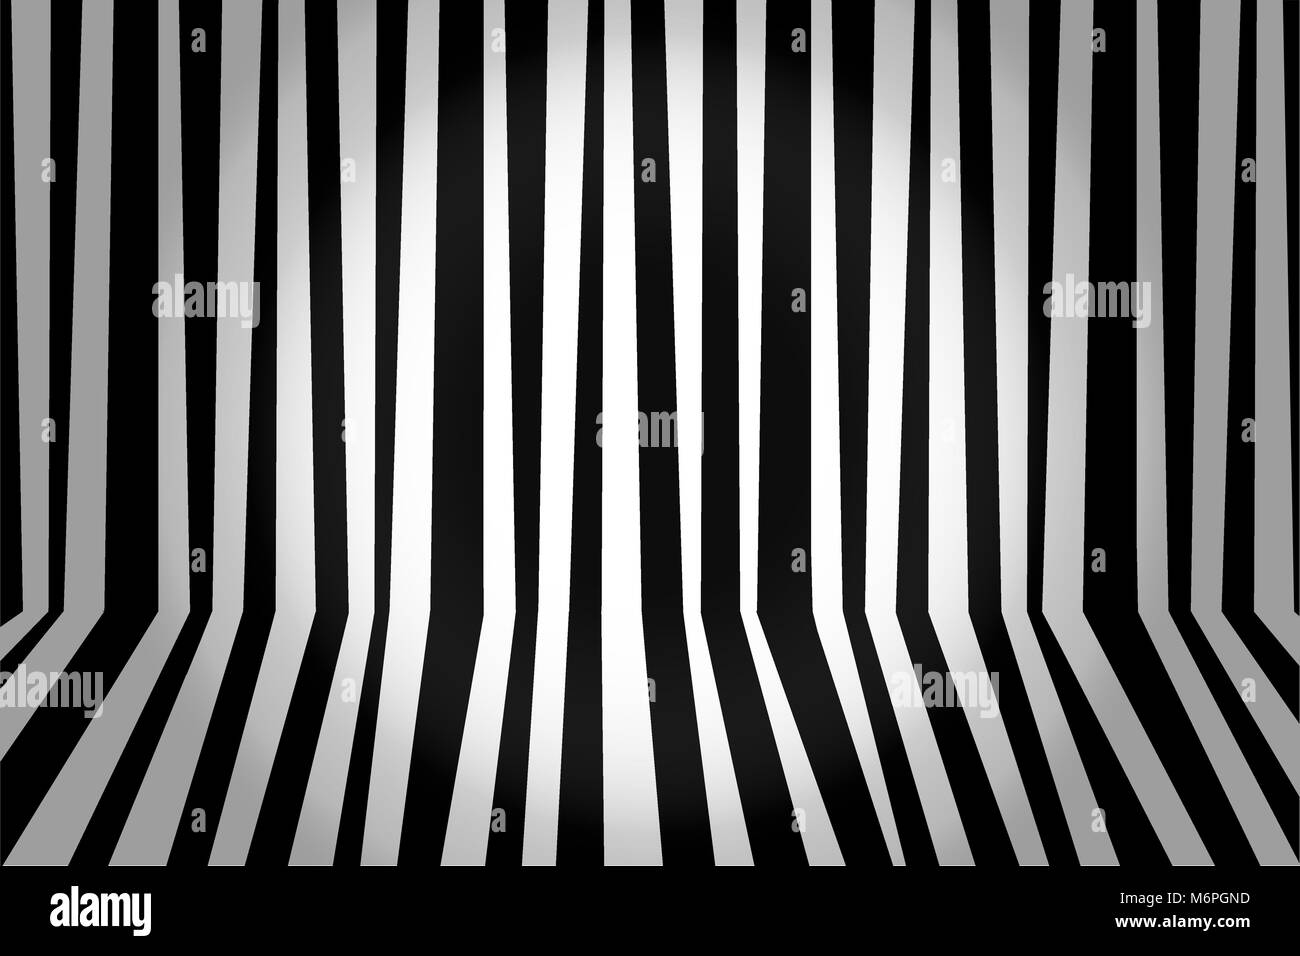 Monochrome background striped room in black and white. Vector illustration. - Stock Vector